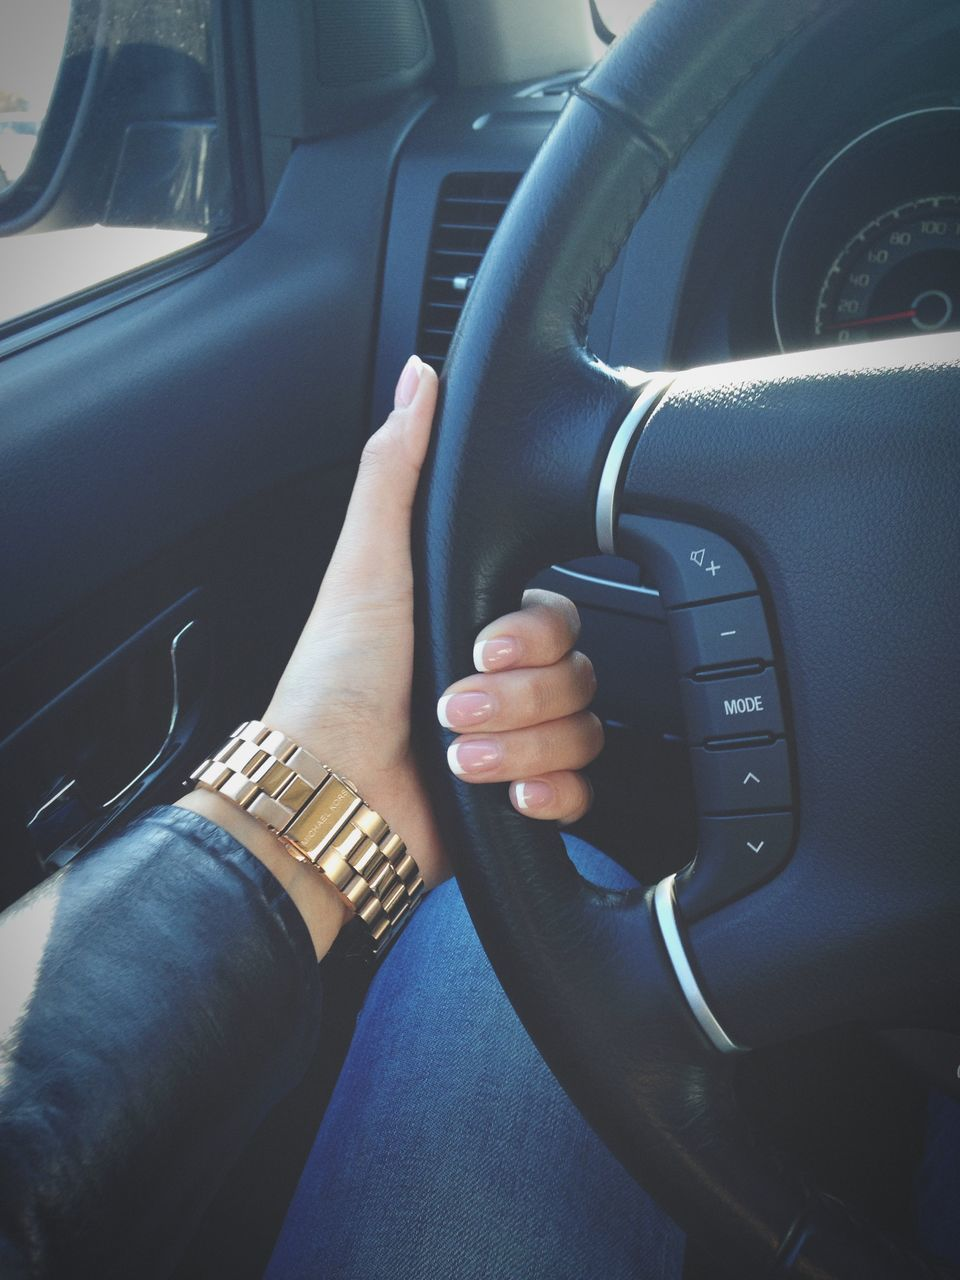 vehicle interior, car, car interior, transportation, steering wheel, land vehicle, mode of transport, dashboard, human hand, driving, sitting, travel, human body part, real people, day, men, togetherness, speedometer, seat, outdoors, close-up, people